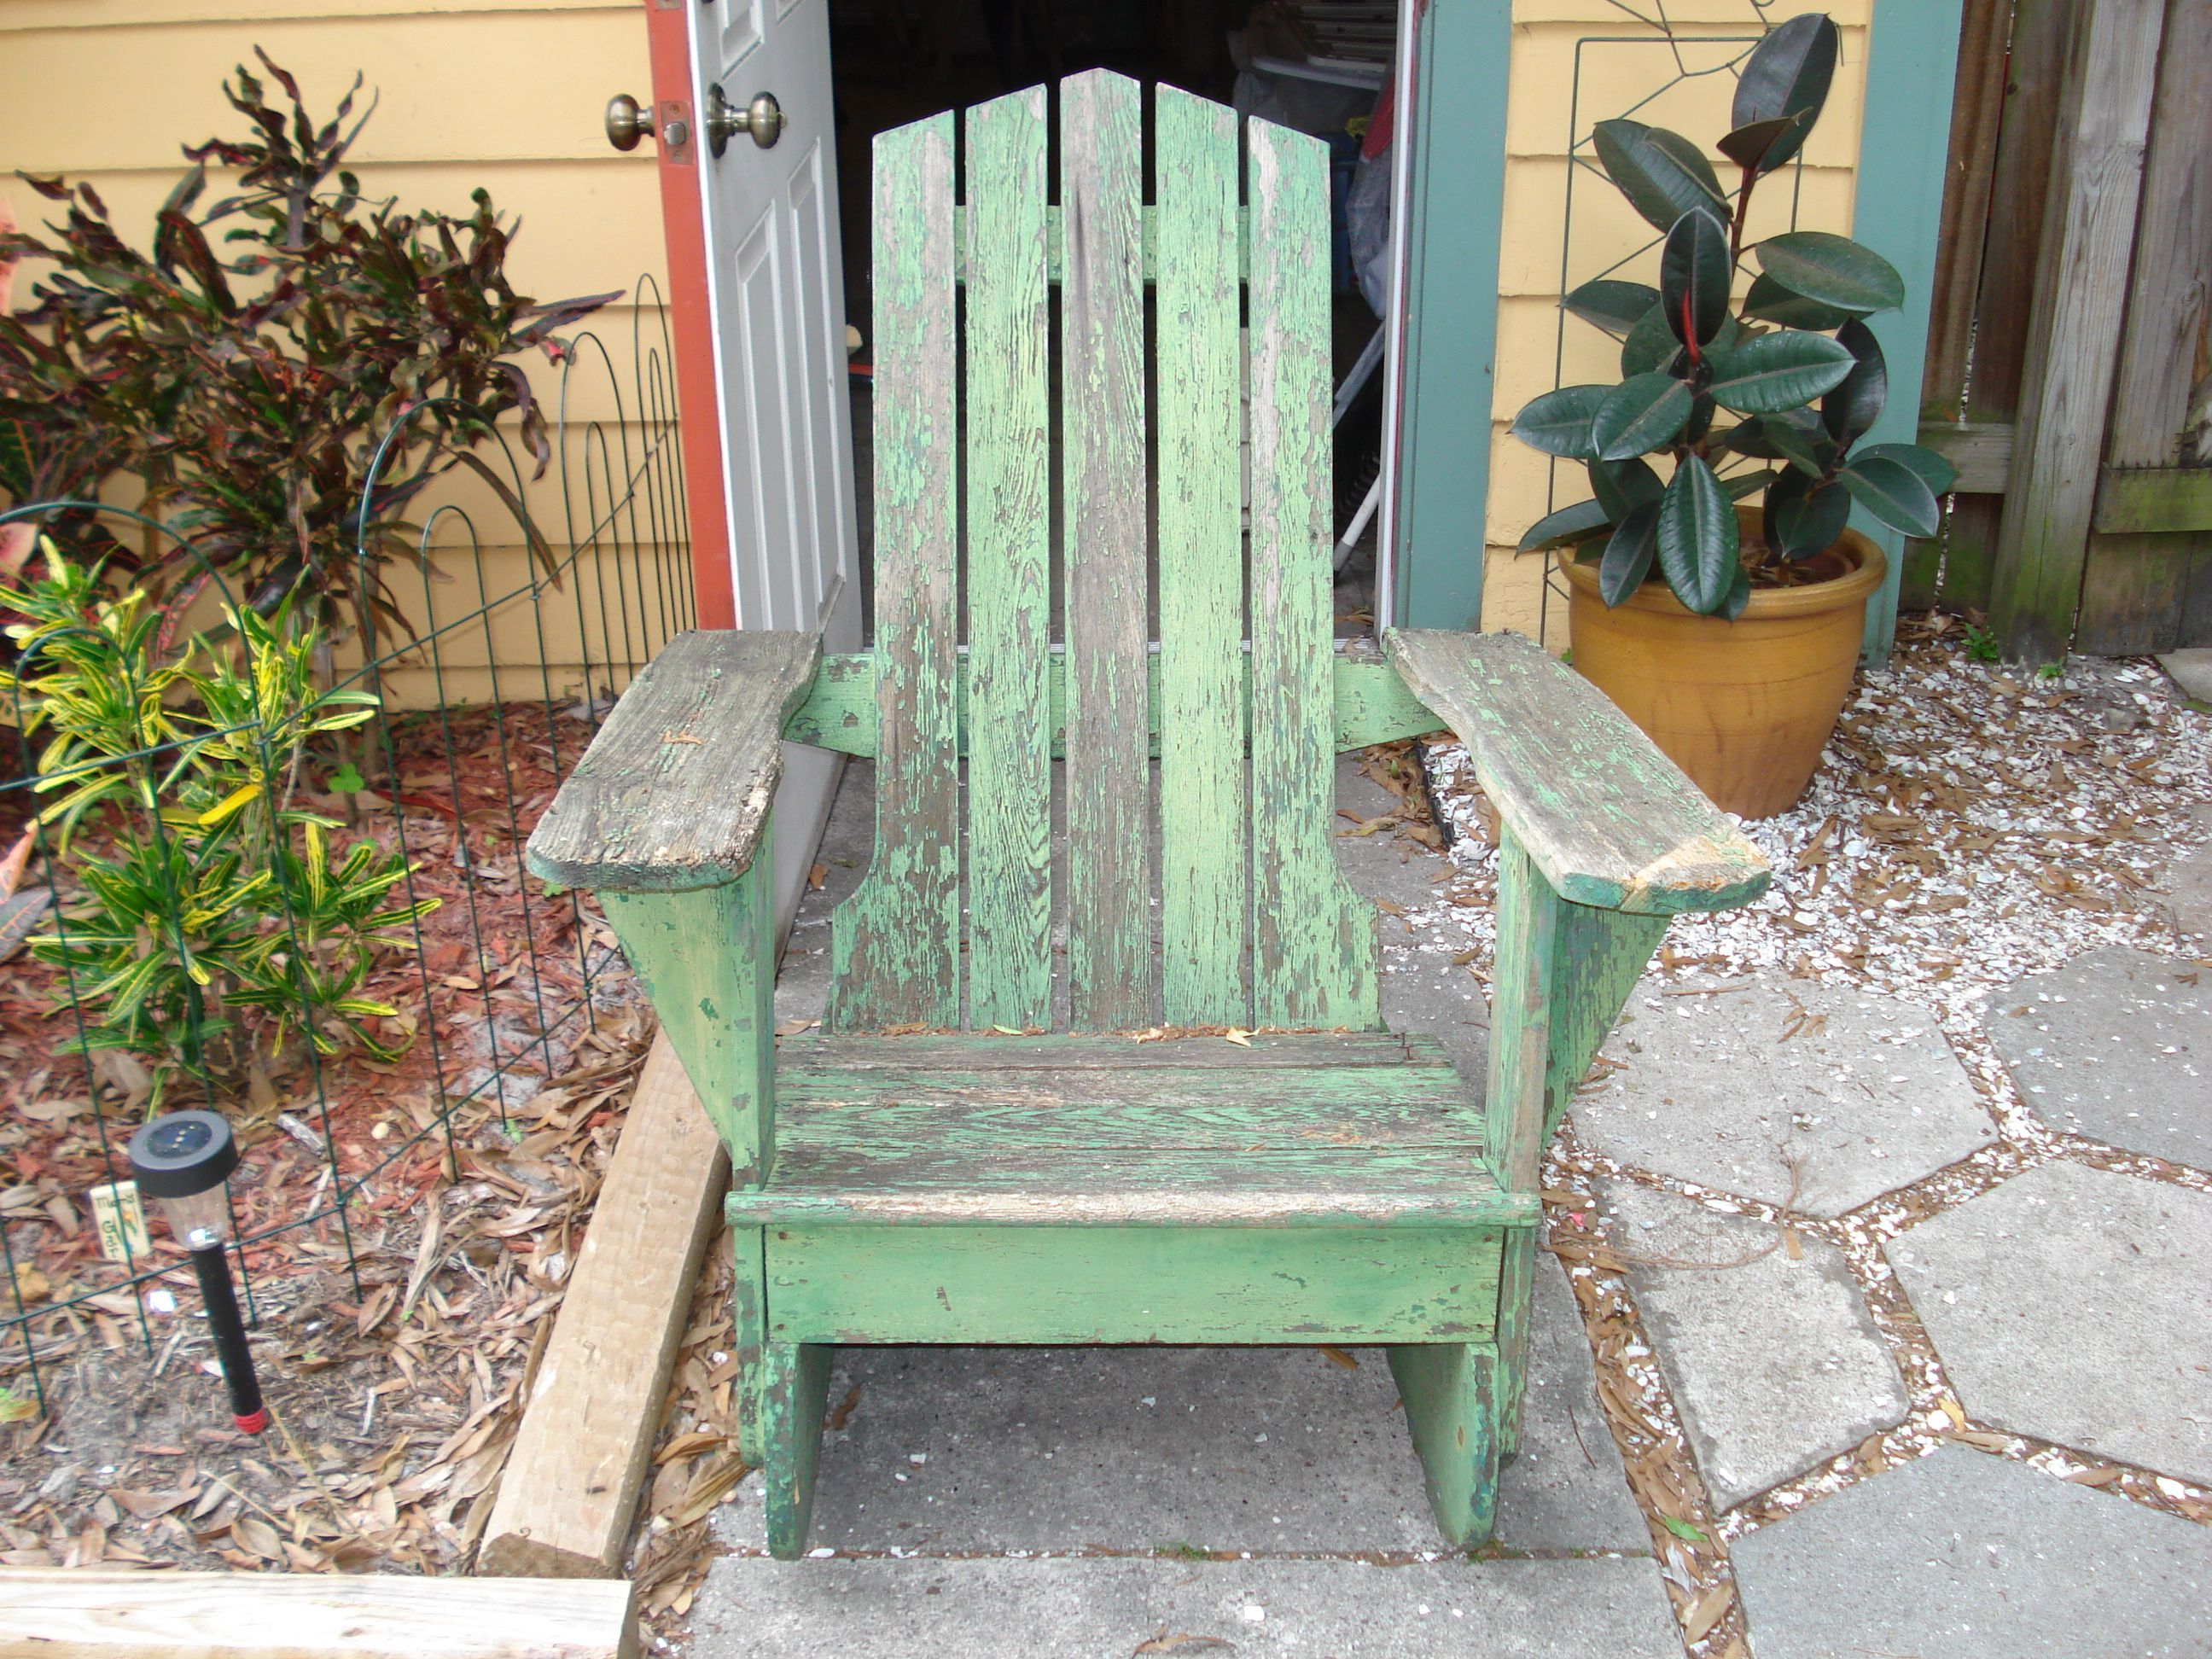 Neighbors were throwing out this old rocking chair